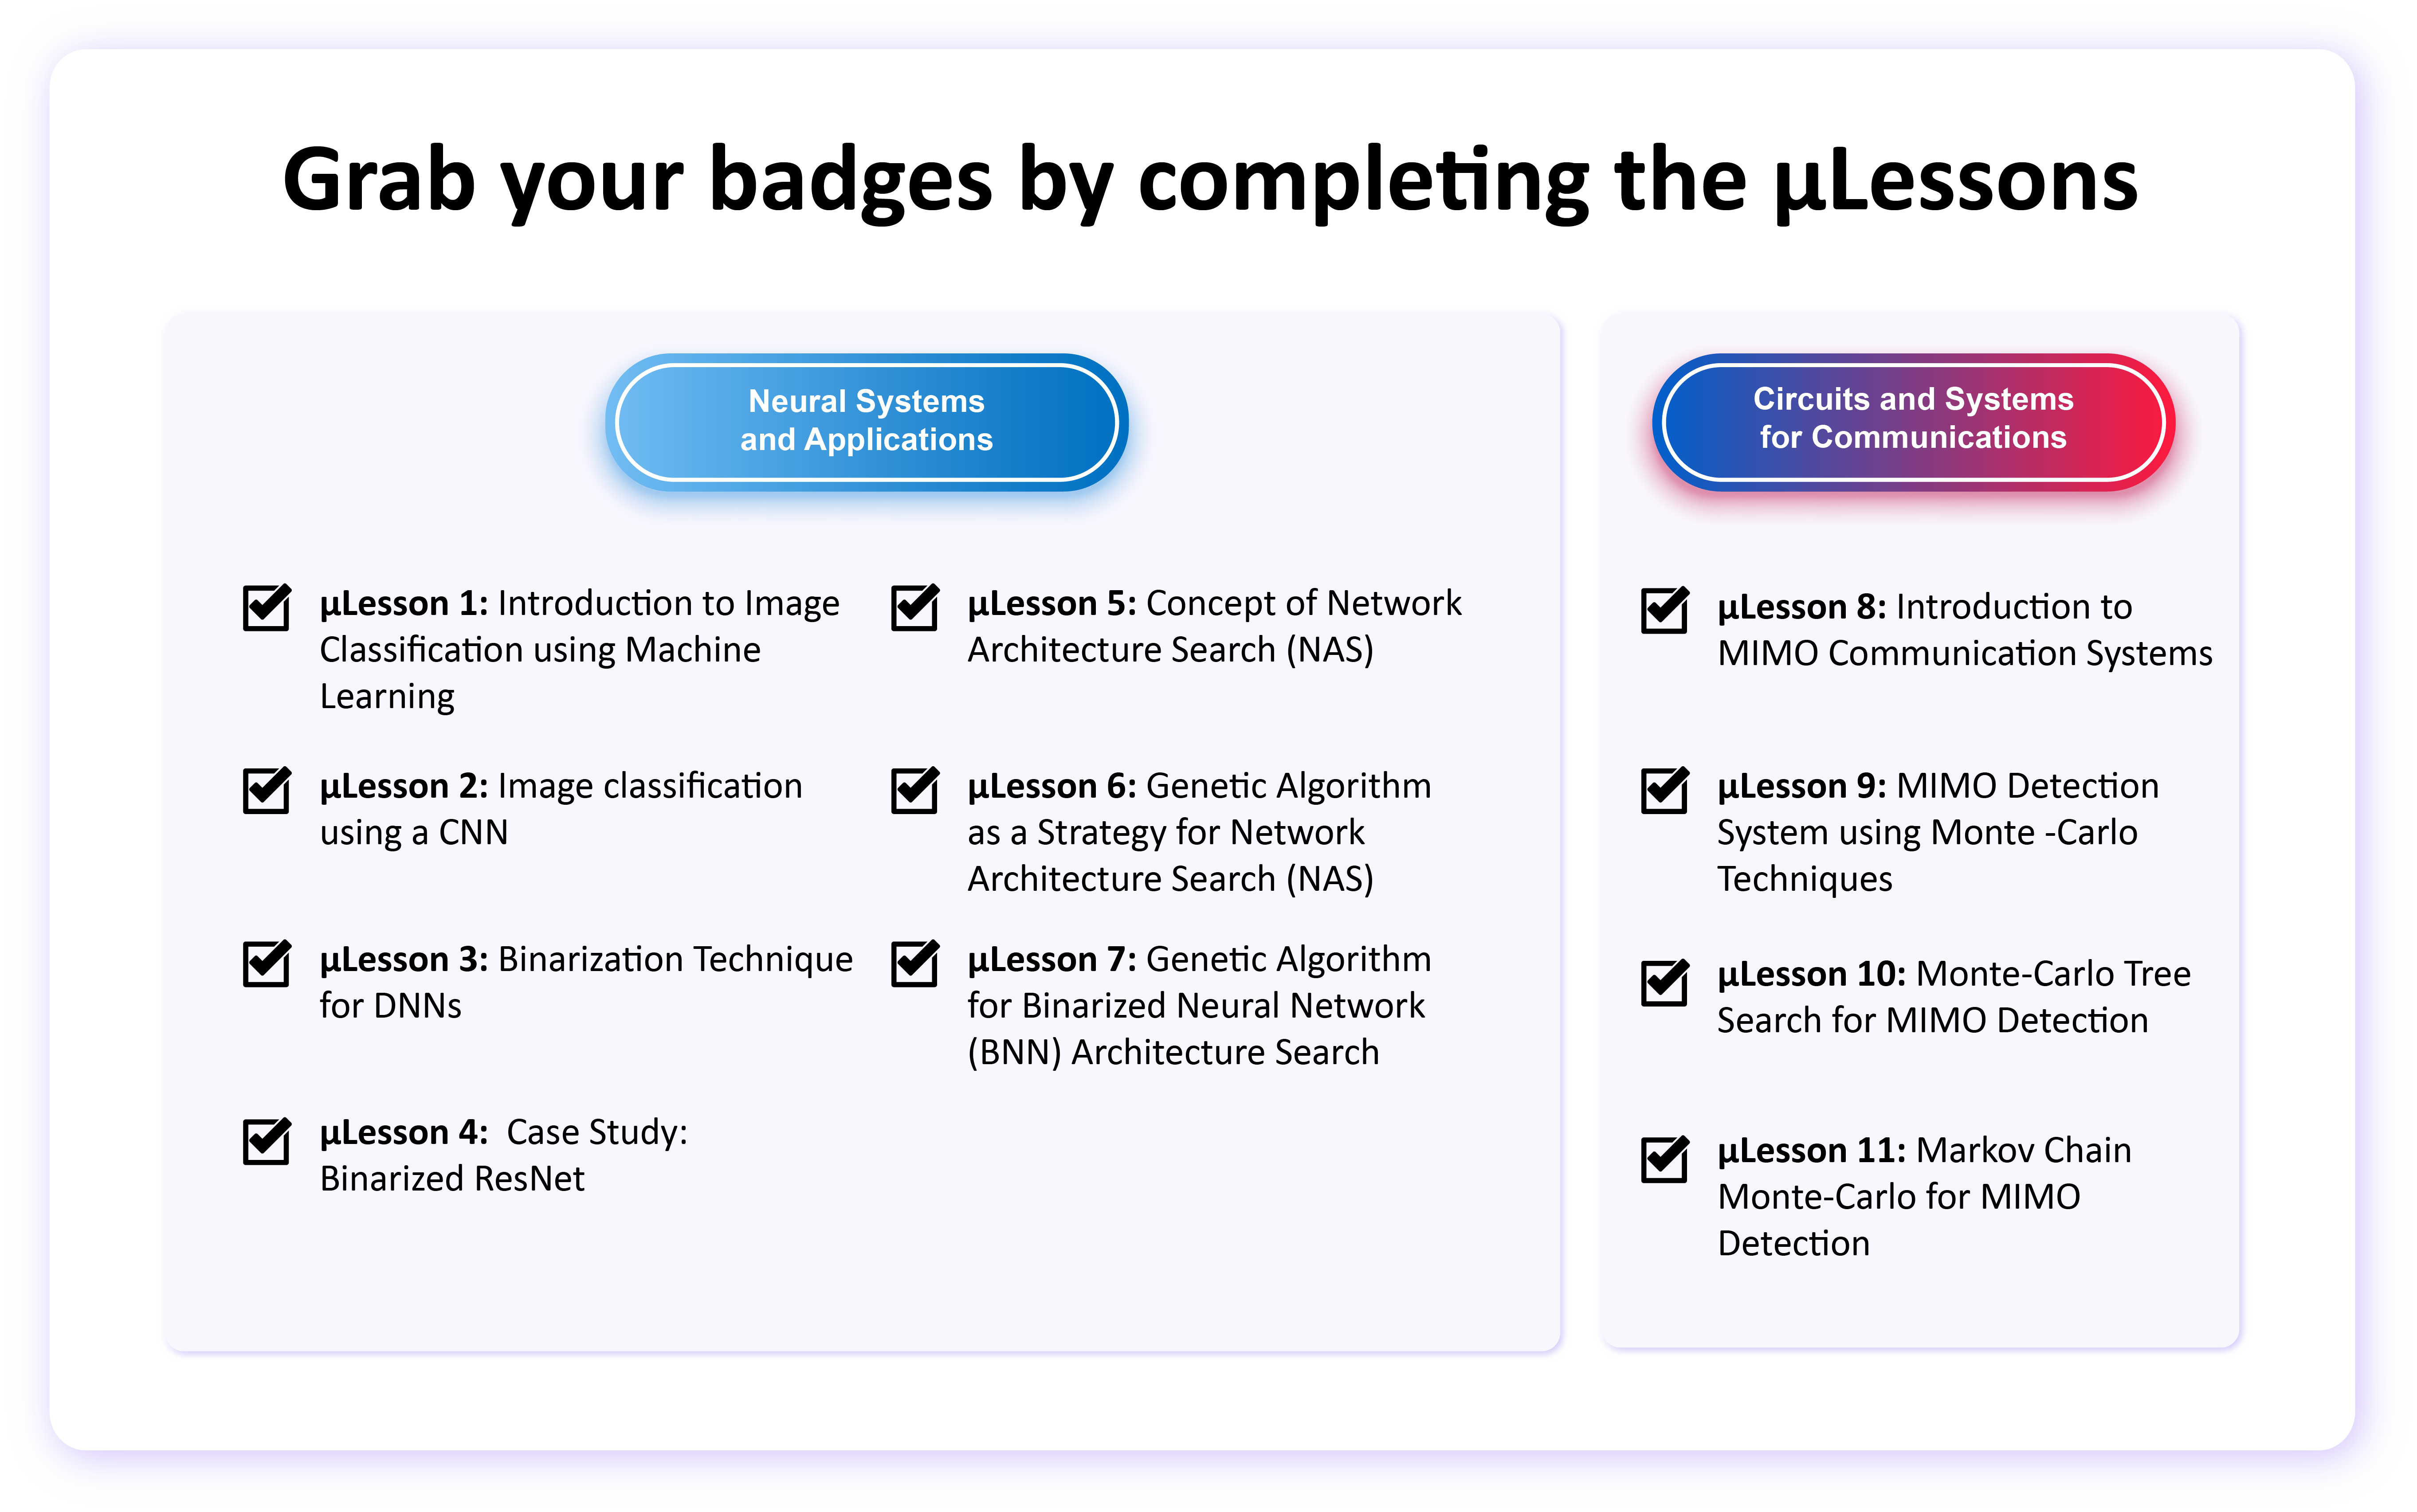 Learners earn badges by completing µlessons